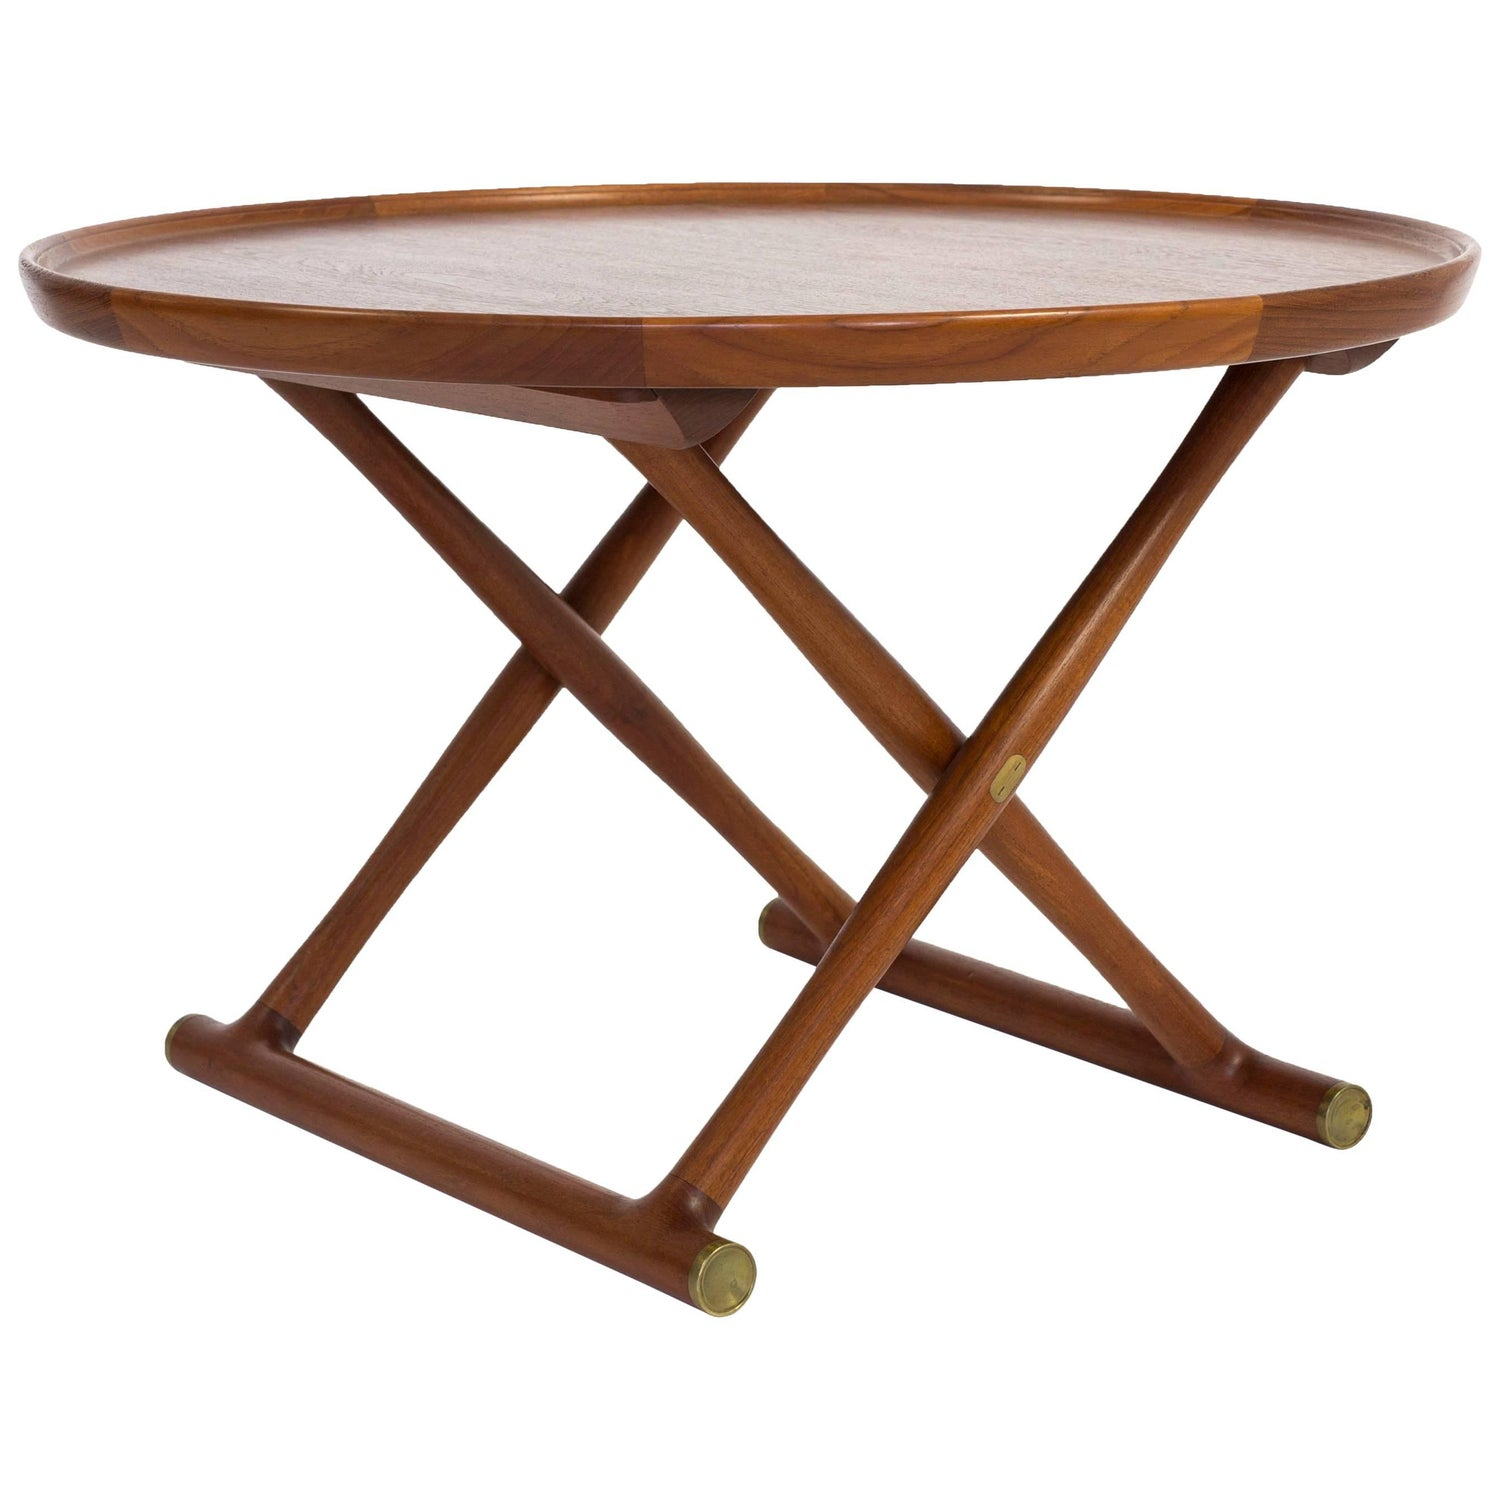 Mogens Lassen Egyptian Table in Teak A J Iversen For Sale at